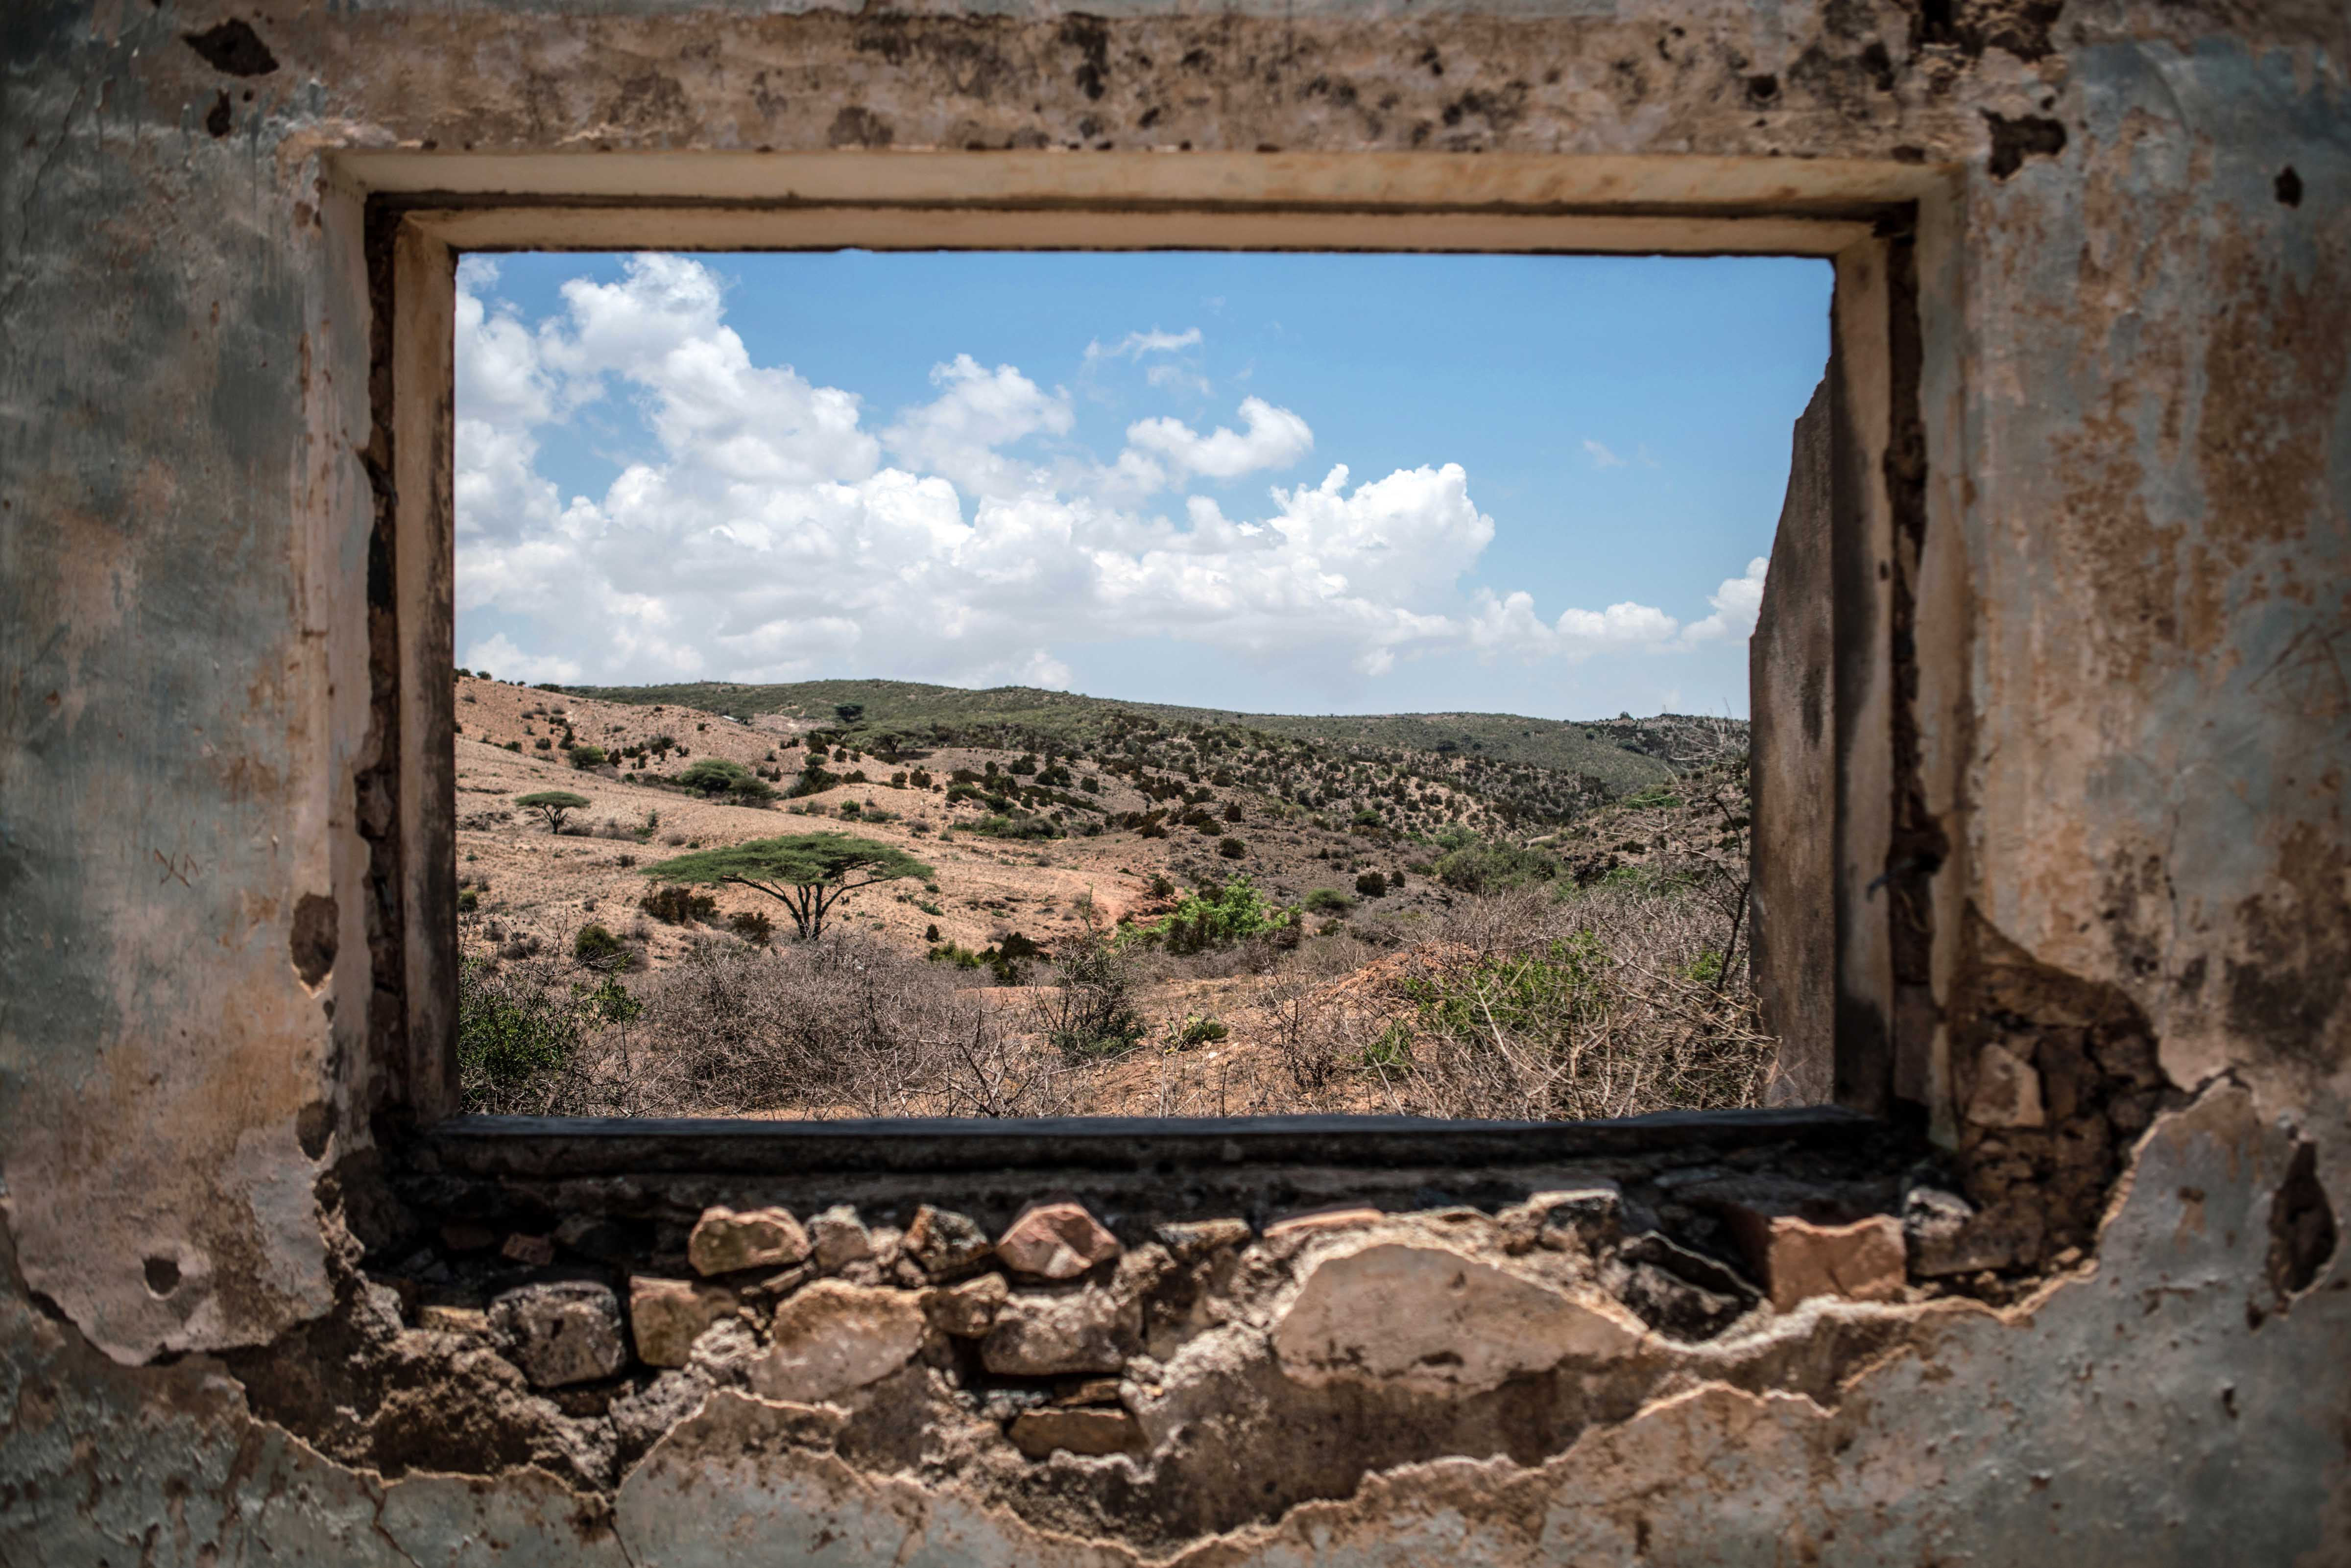 """Somalia's arid landscape as seen from inside a decaying colonial building in the Somaliland town of Sheikh on April 12, 2016. Somalia has never been a forgiving place. A land of extreme temperatures and little rain, the country has faced cyclical droughts and periodic famines throughout the past century. But decades of civil war, coupled with the effects of climate change, have set the country on a path to environmental disaster. Home to a bloody Islamist insurgency that is arguably the world's first climate war, Somalia is grappling with rapid desertification, increasingly erratic rainfall, and the destruction of coastal waters by foreign fishing fleets. """"With this weather pattern, Somalia or Somalis will not survive,"""" says Fatima Jibrell, a Somali-American environmental activist. """"Maybe the land, a piece of desert called Somalia, will exist on the map of the world, but Somalis cannot survive."""" (Photo by Nichole Sobecki/GroundTruth)"""